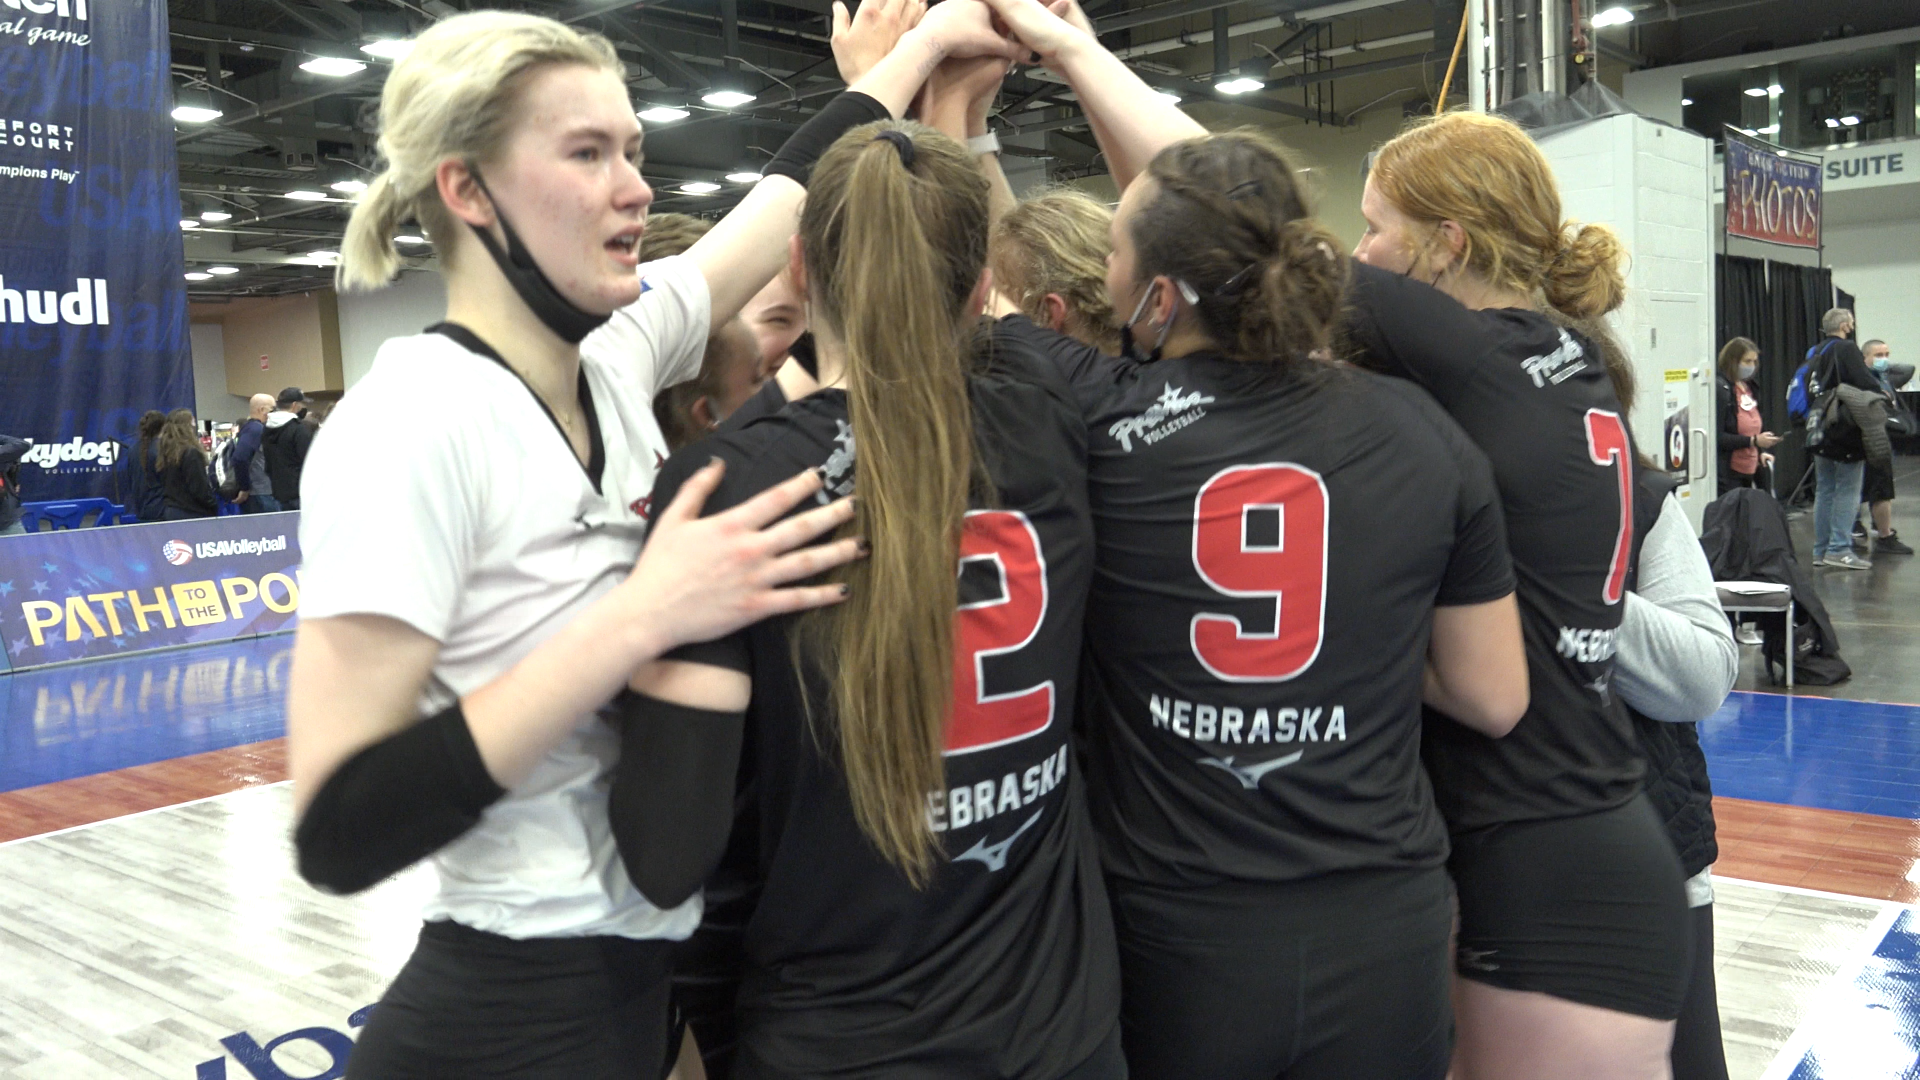 Premier Nebraska 18 Gold huddle and celebrate together after winning the 18 Open Division National Championship.